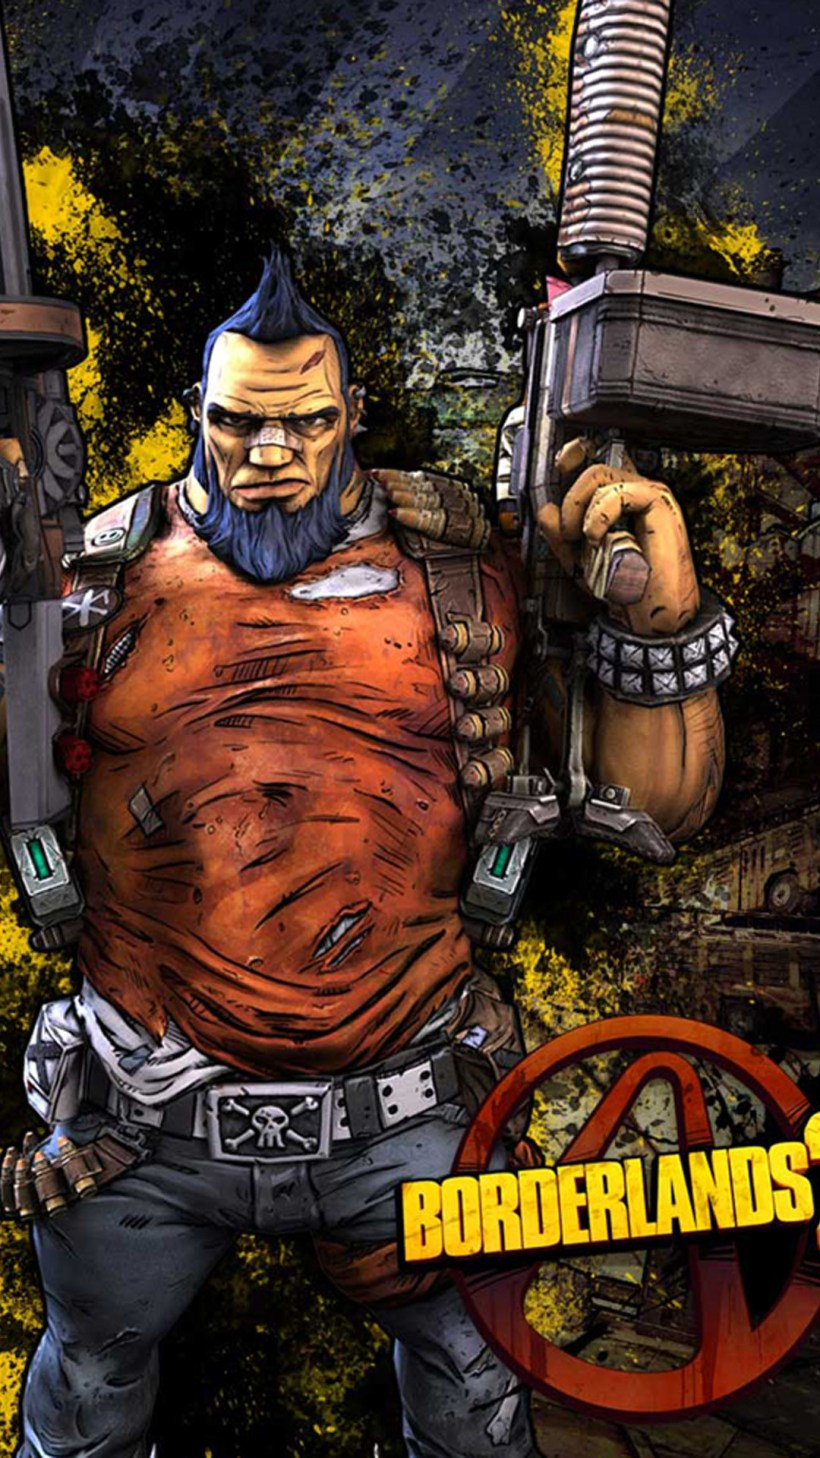 Borderlands Wallpaper Iphone 6 Bedwalls Co